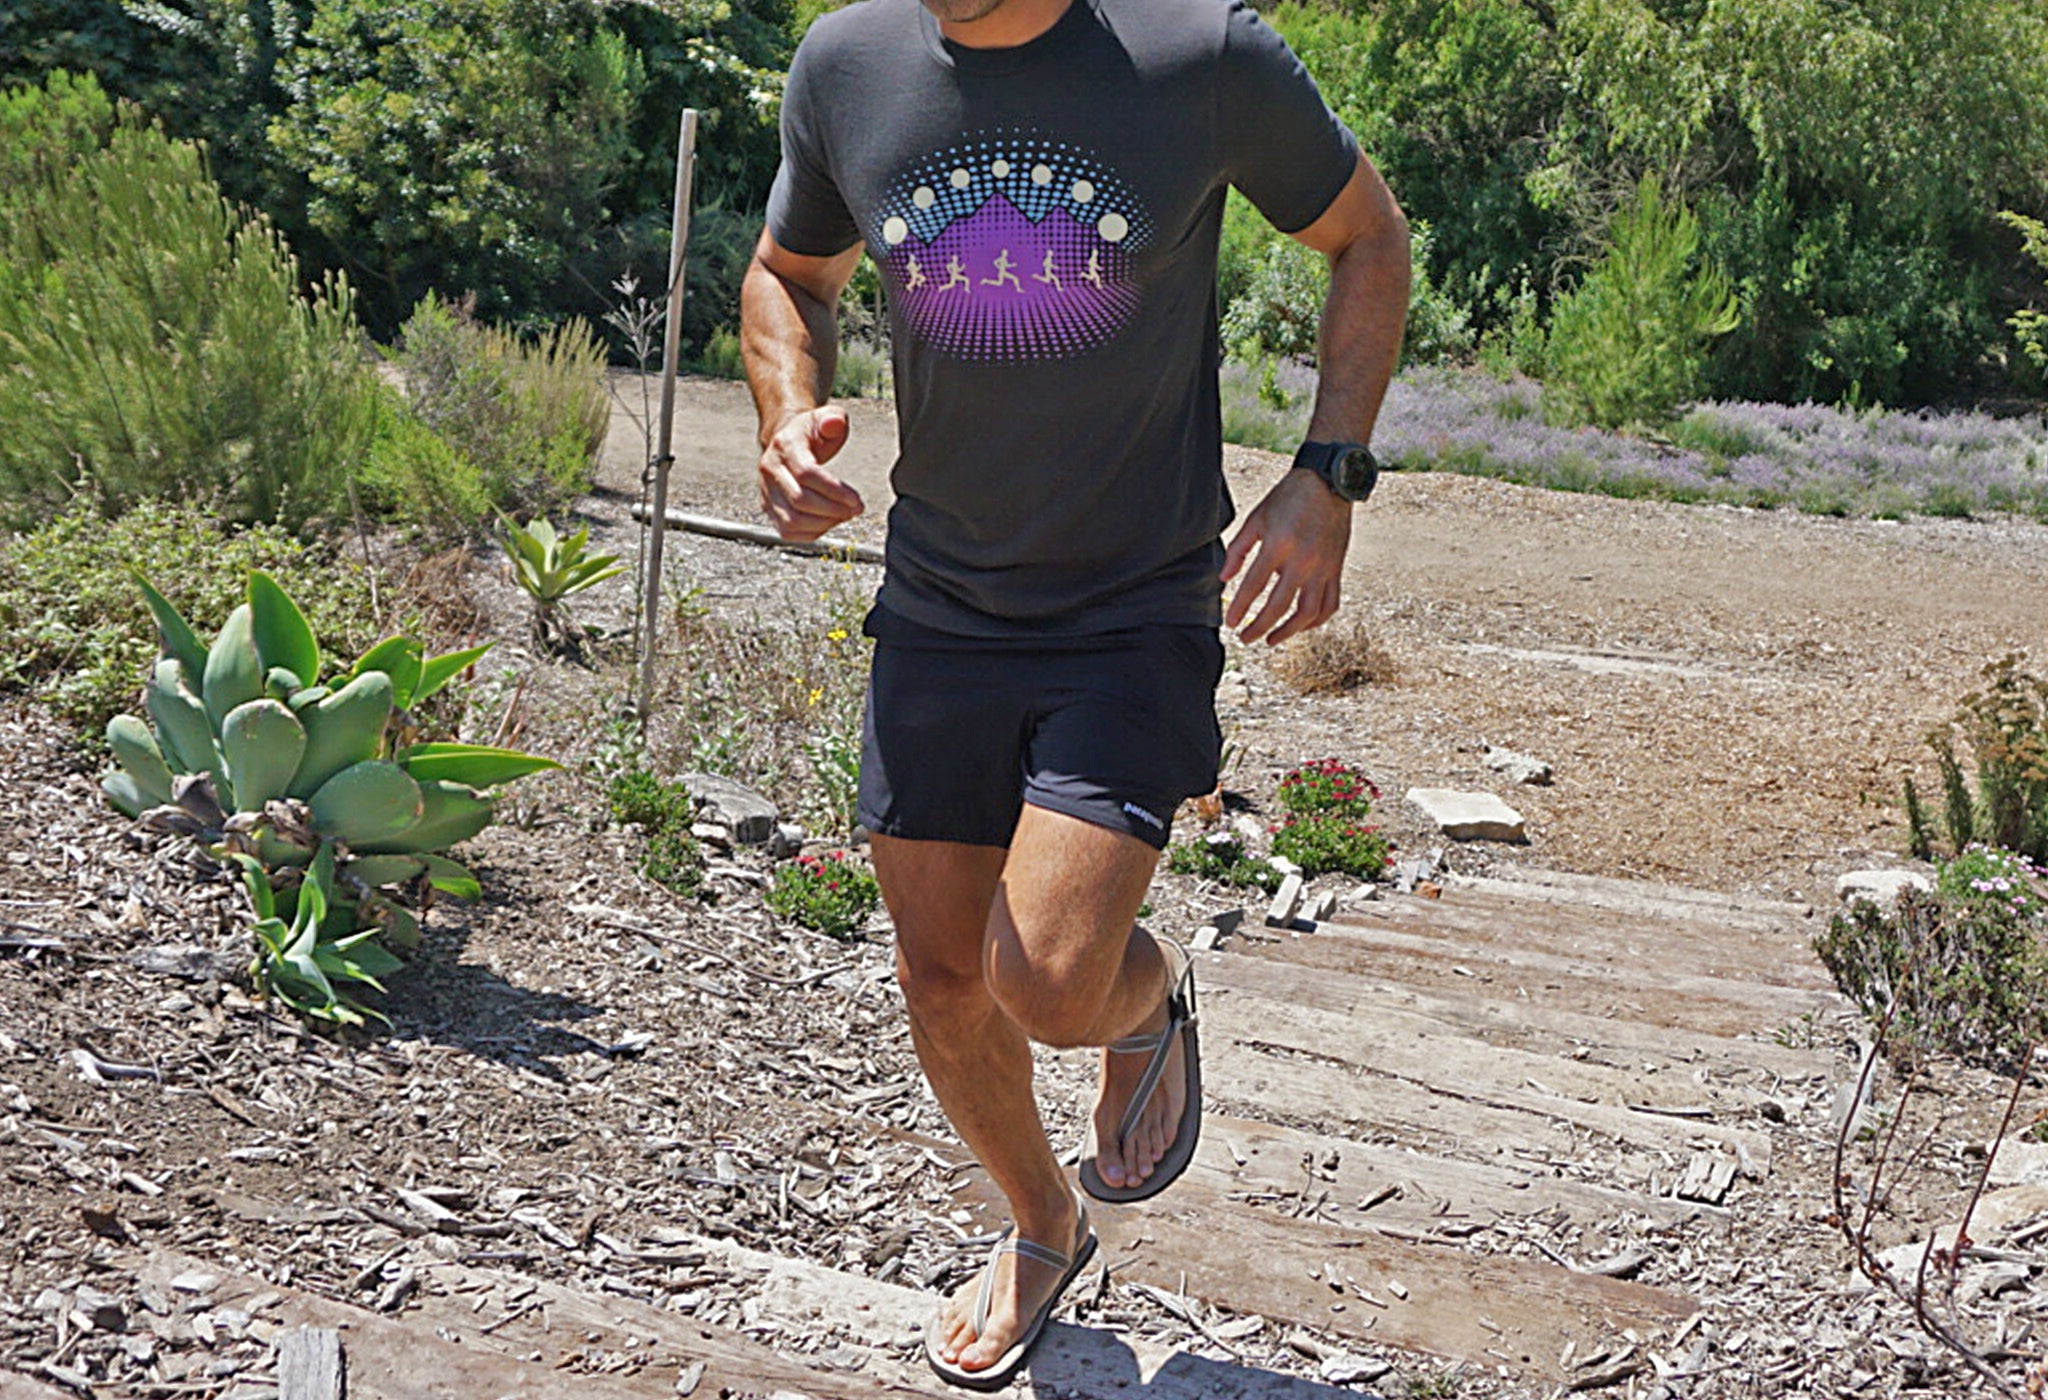 earth runner running tshirt